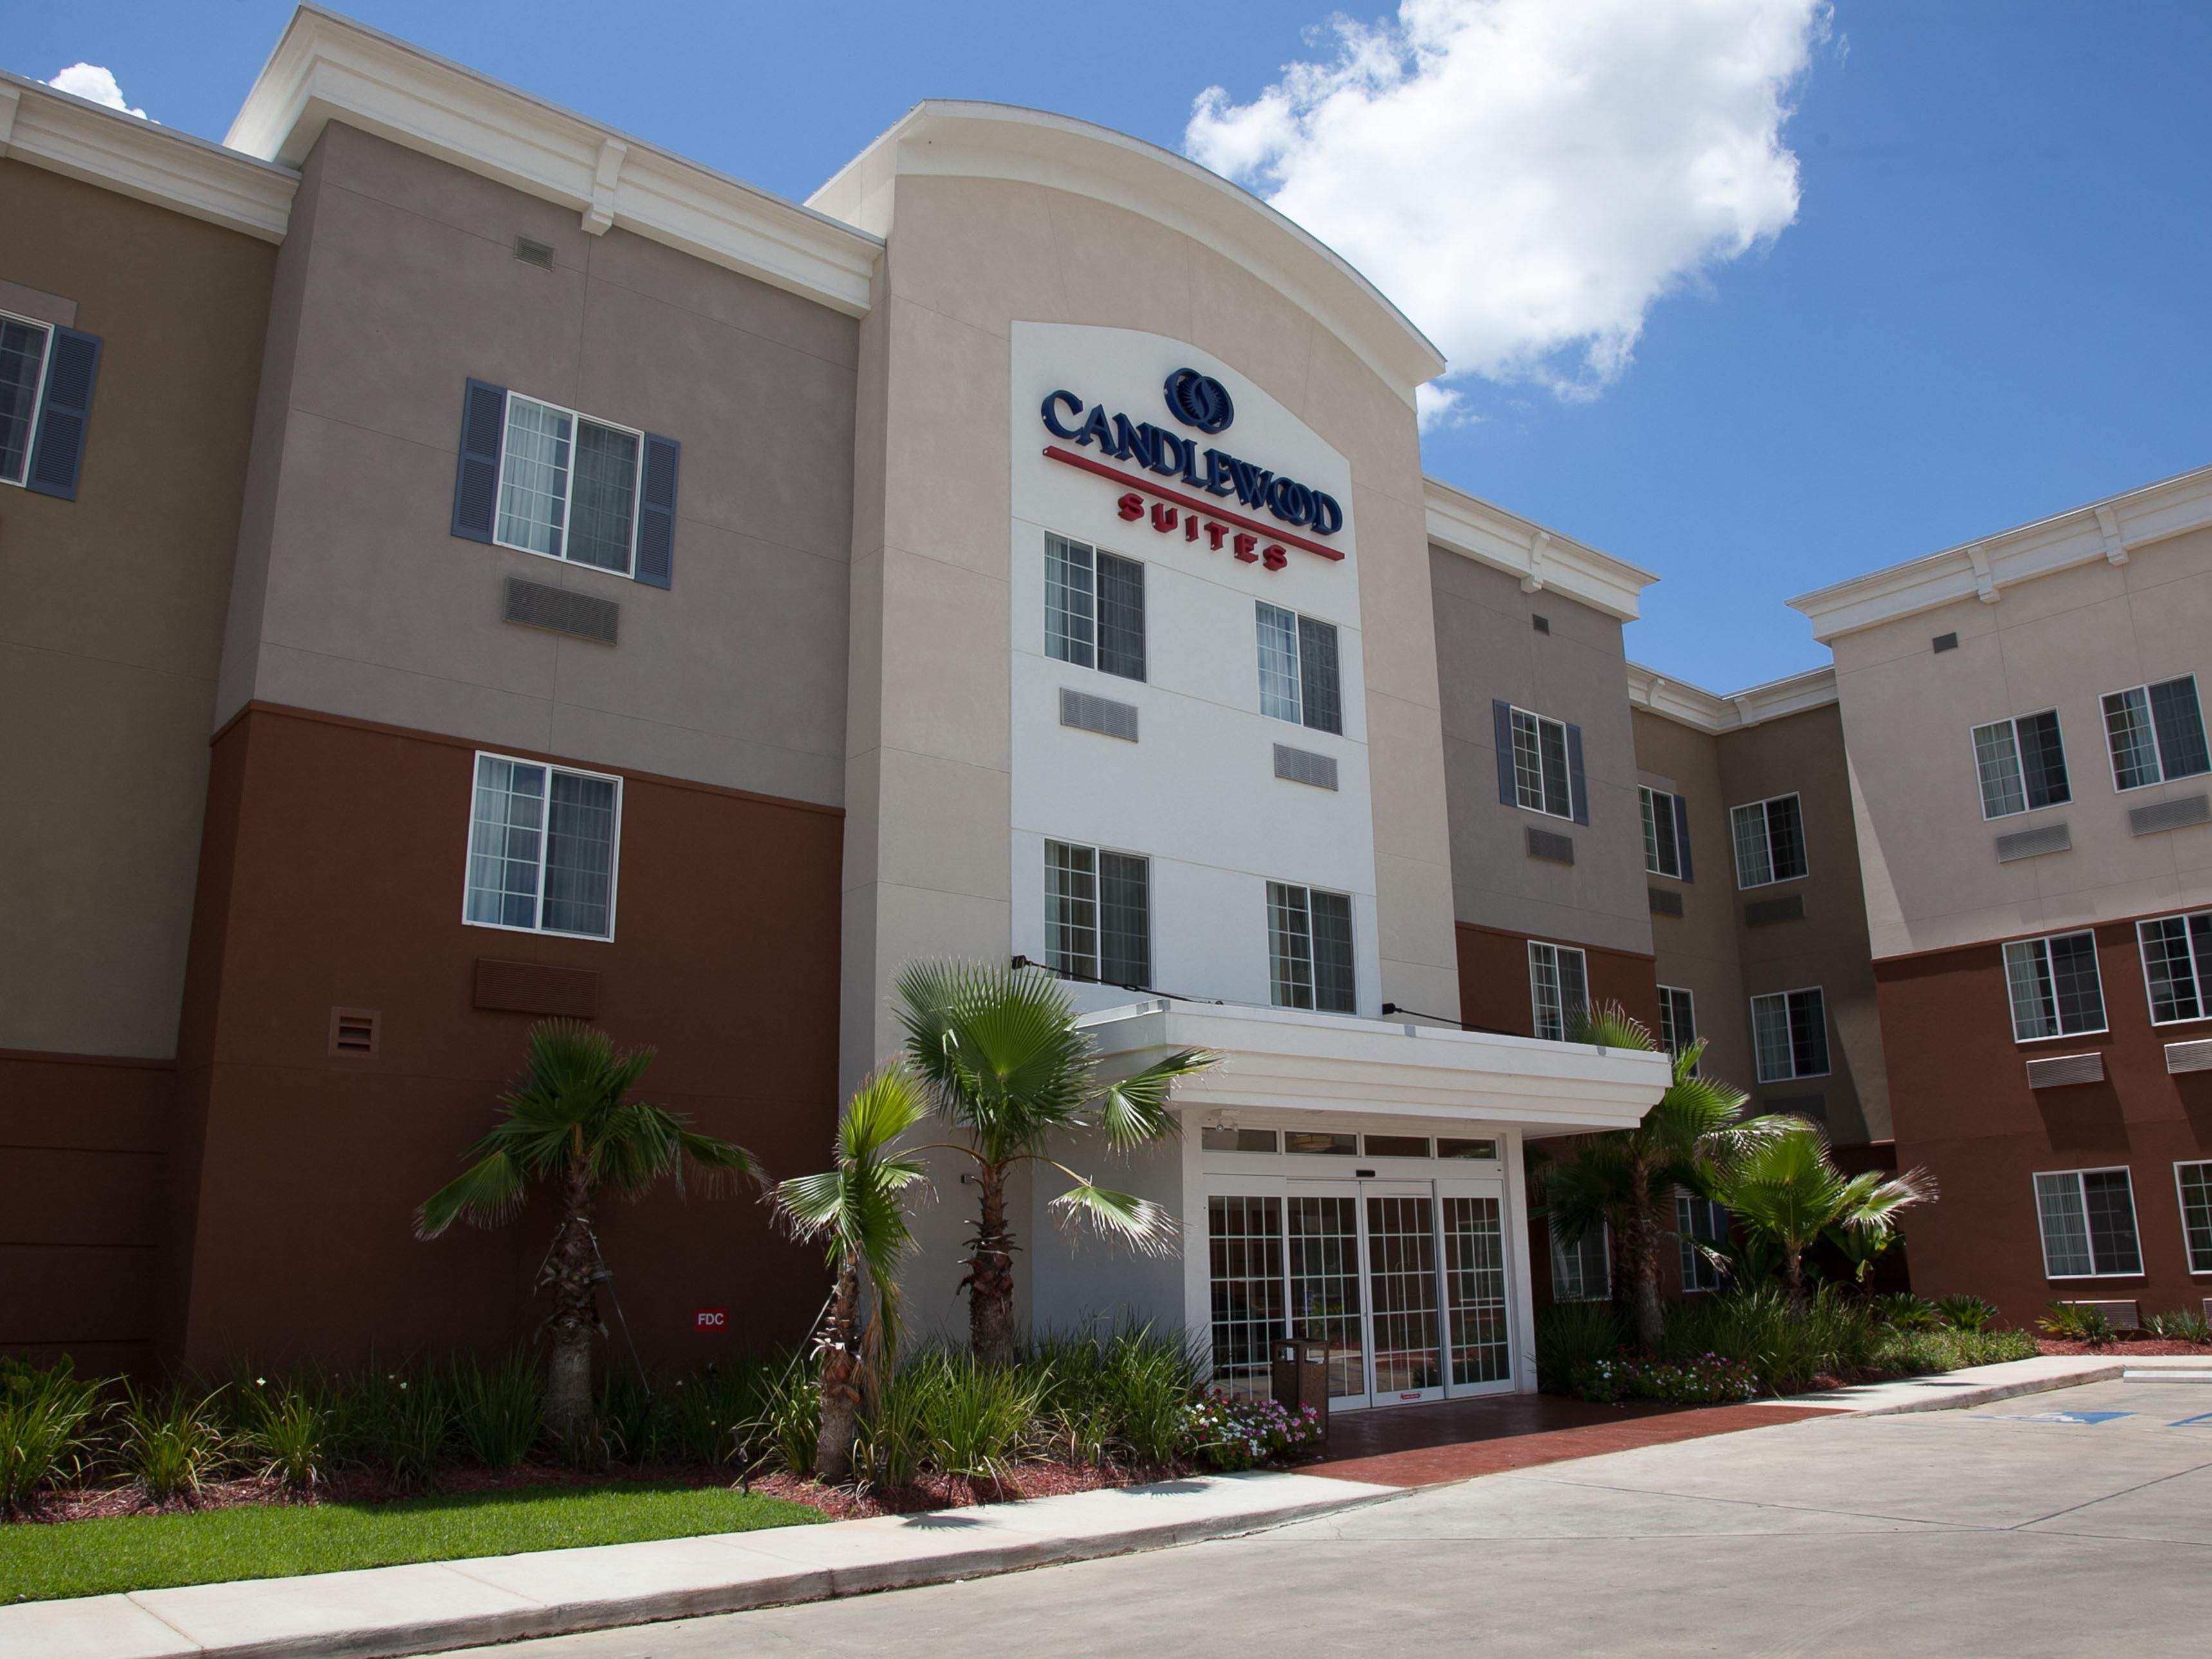 Candlewood Suites Alexandria Extended Stay Hotel In Louisiana